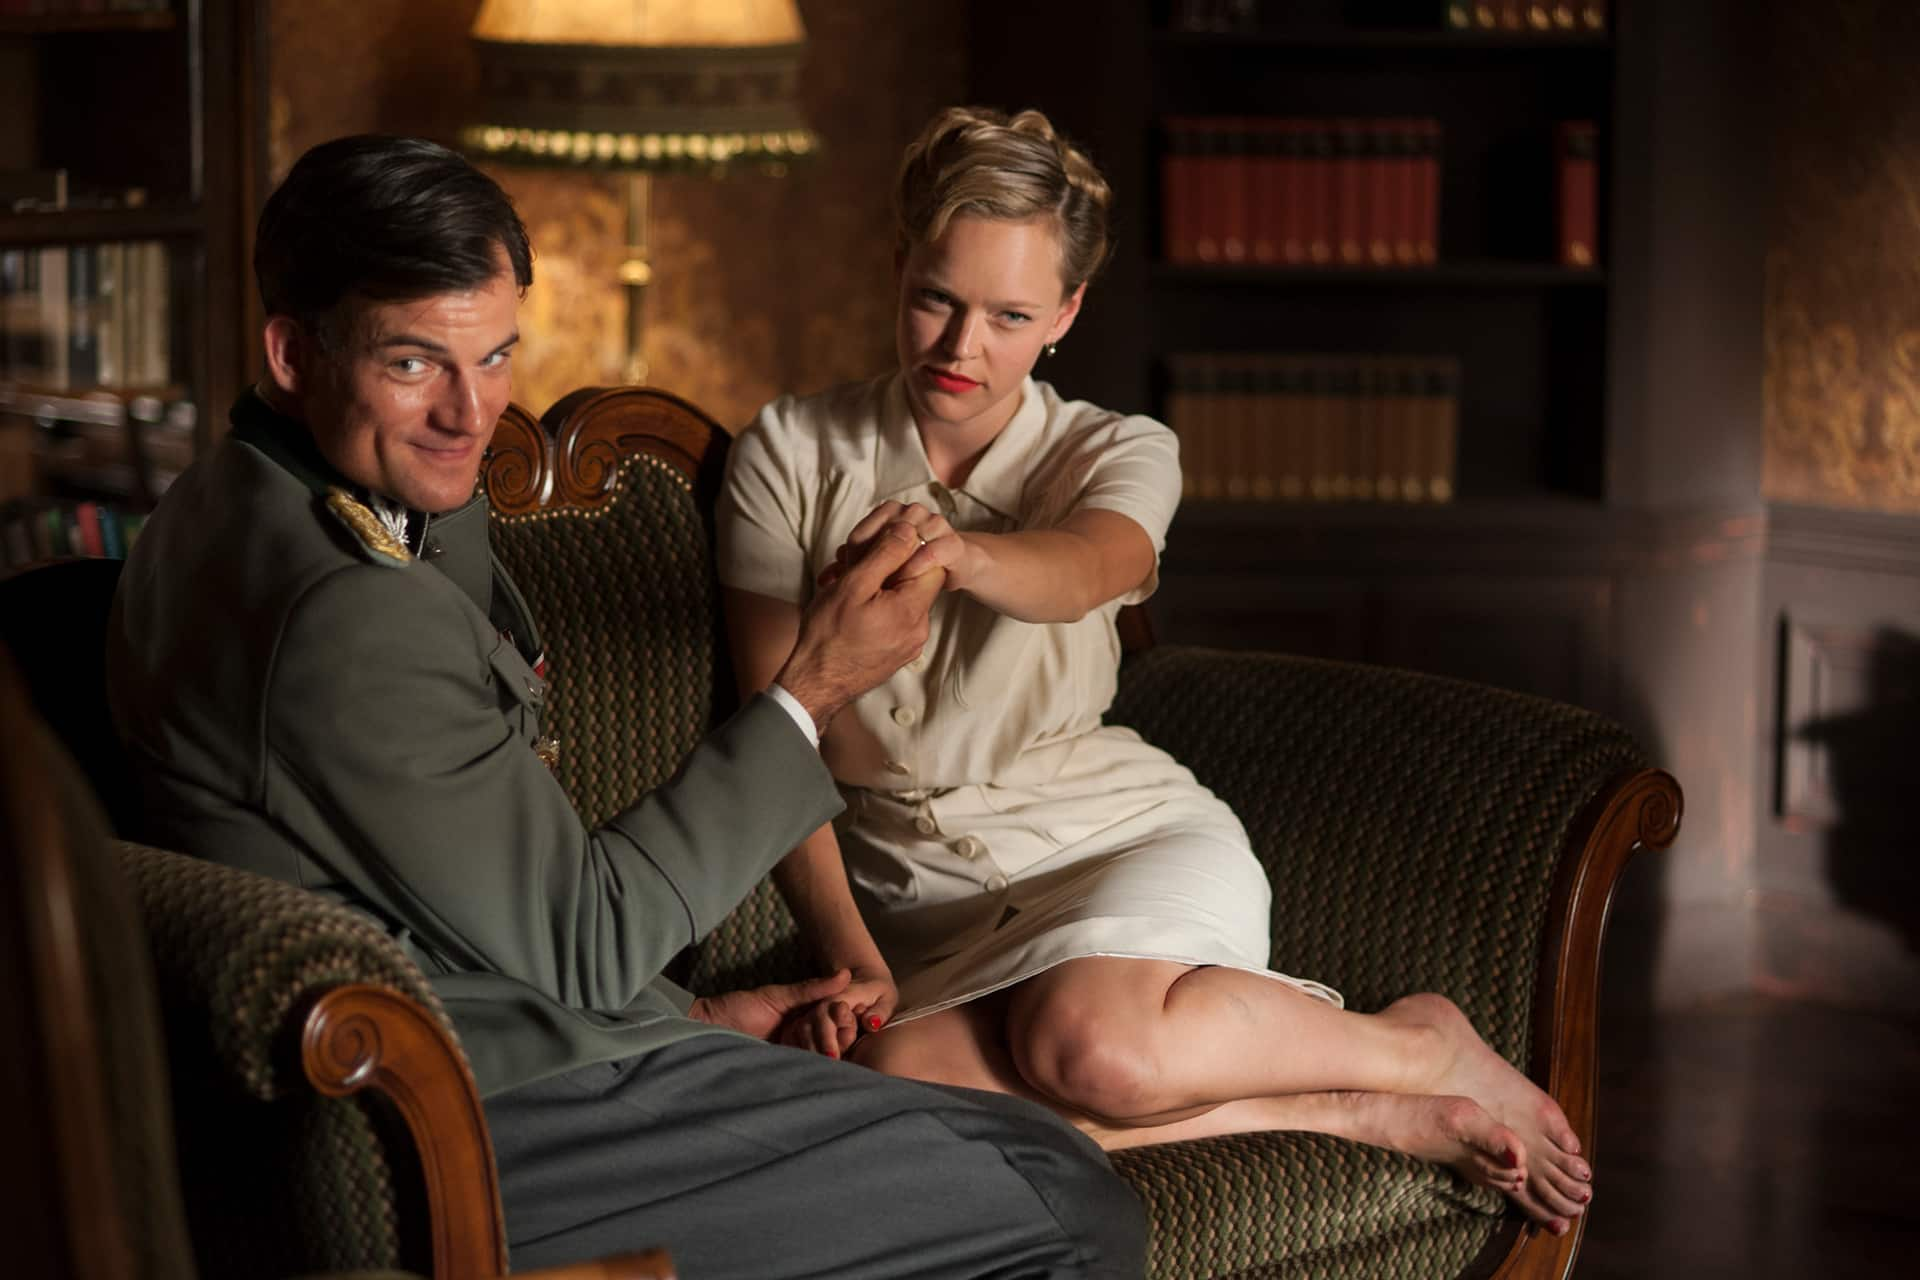 Behind the scenes on the set of X Company Season 3 with Torben Liebrecht (Faber) and Livia Matthes (Sabine).